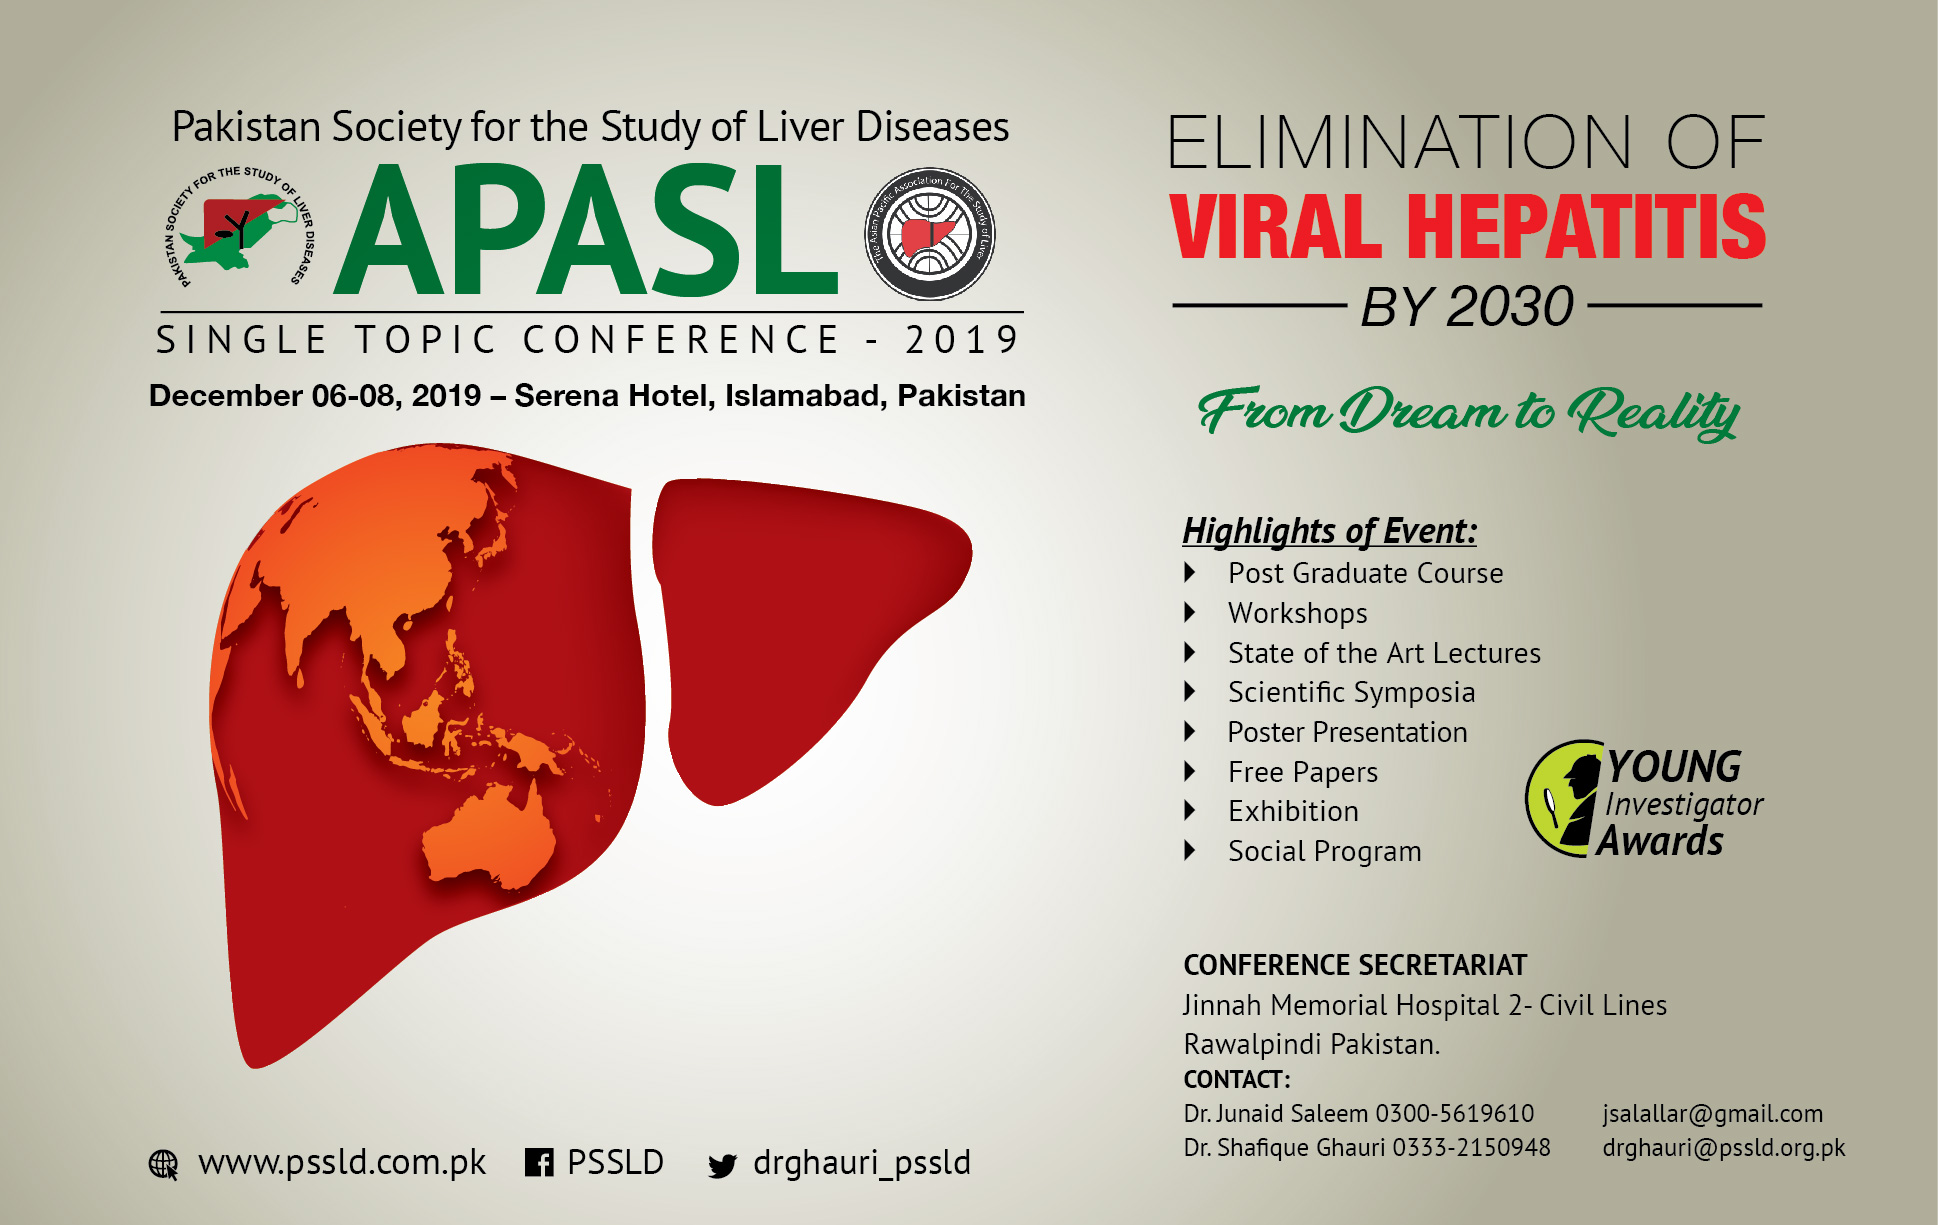 The Asian Pacific Association for the Study of the Liver [APASL]